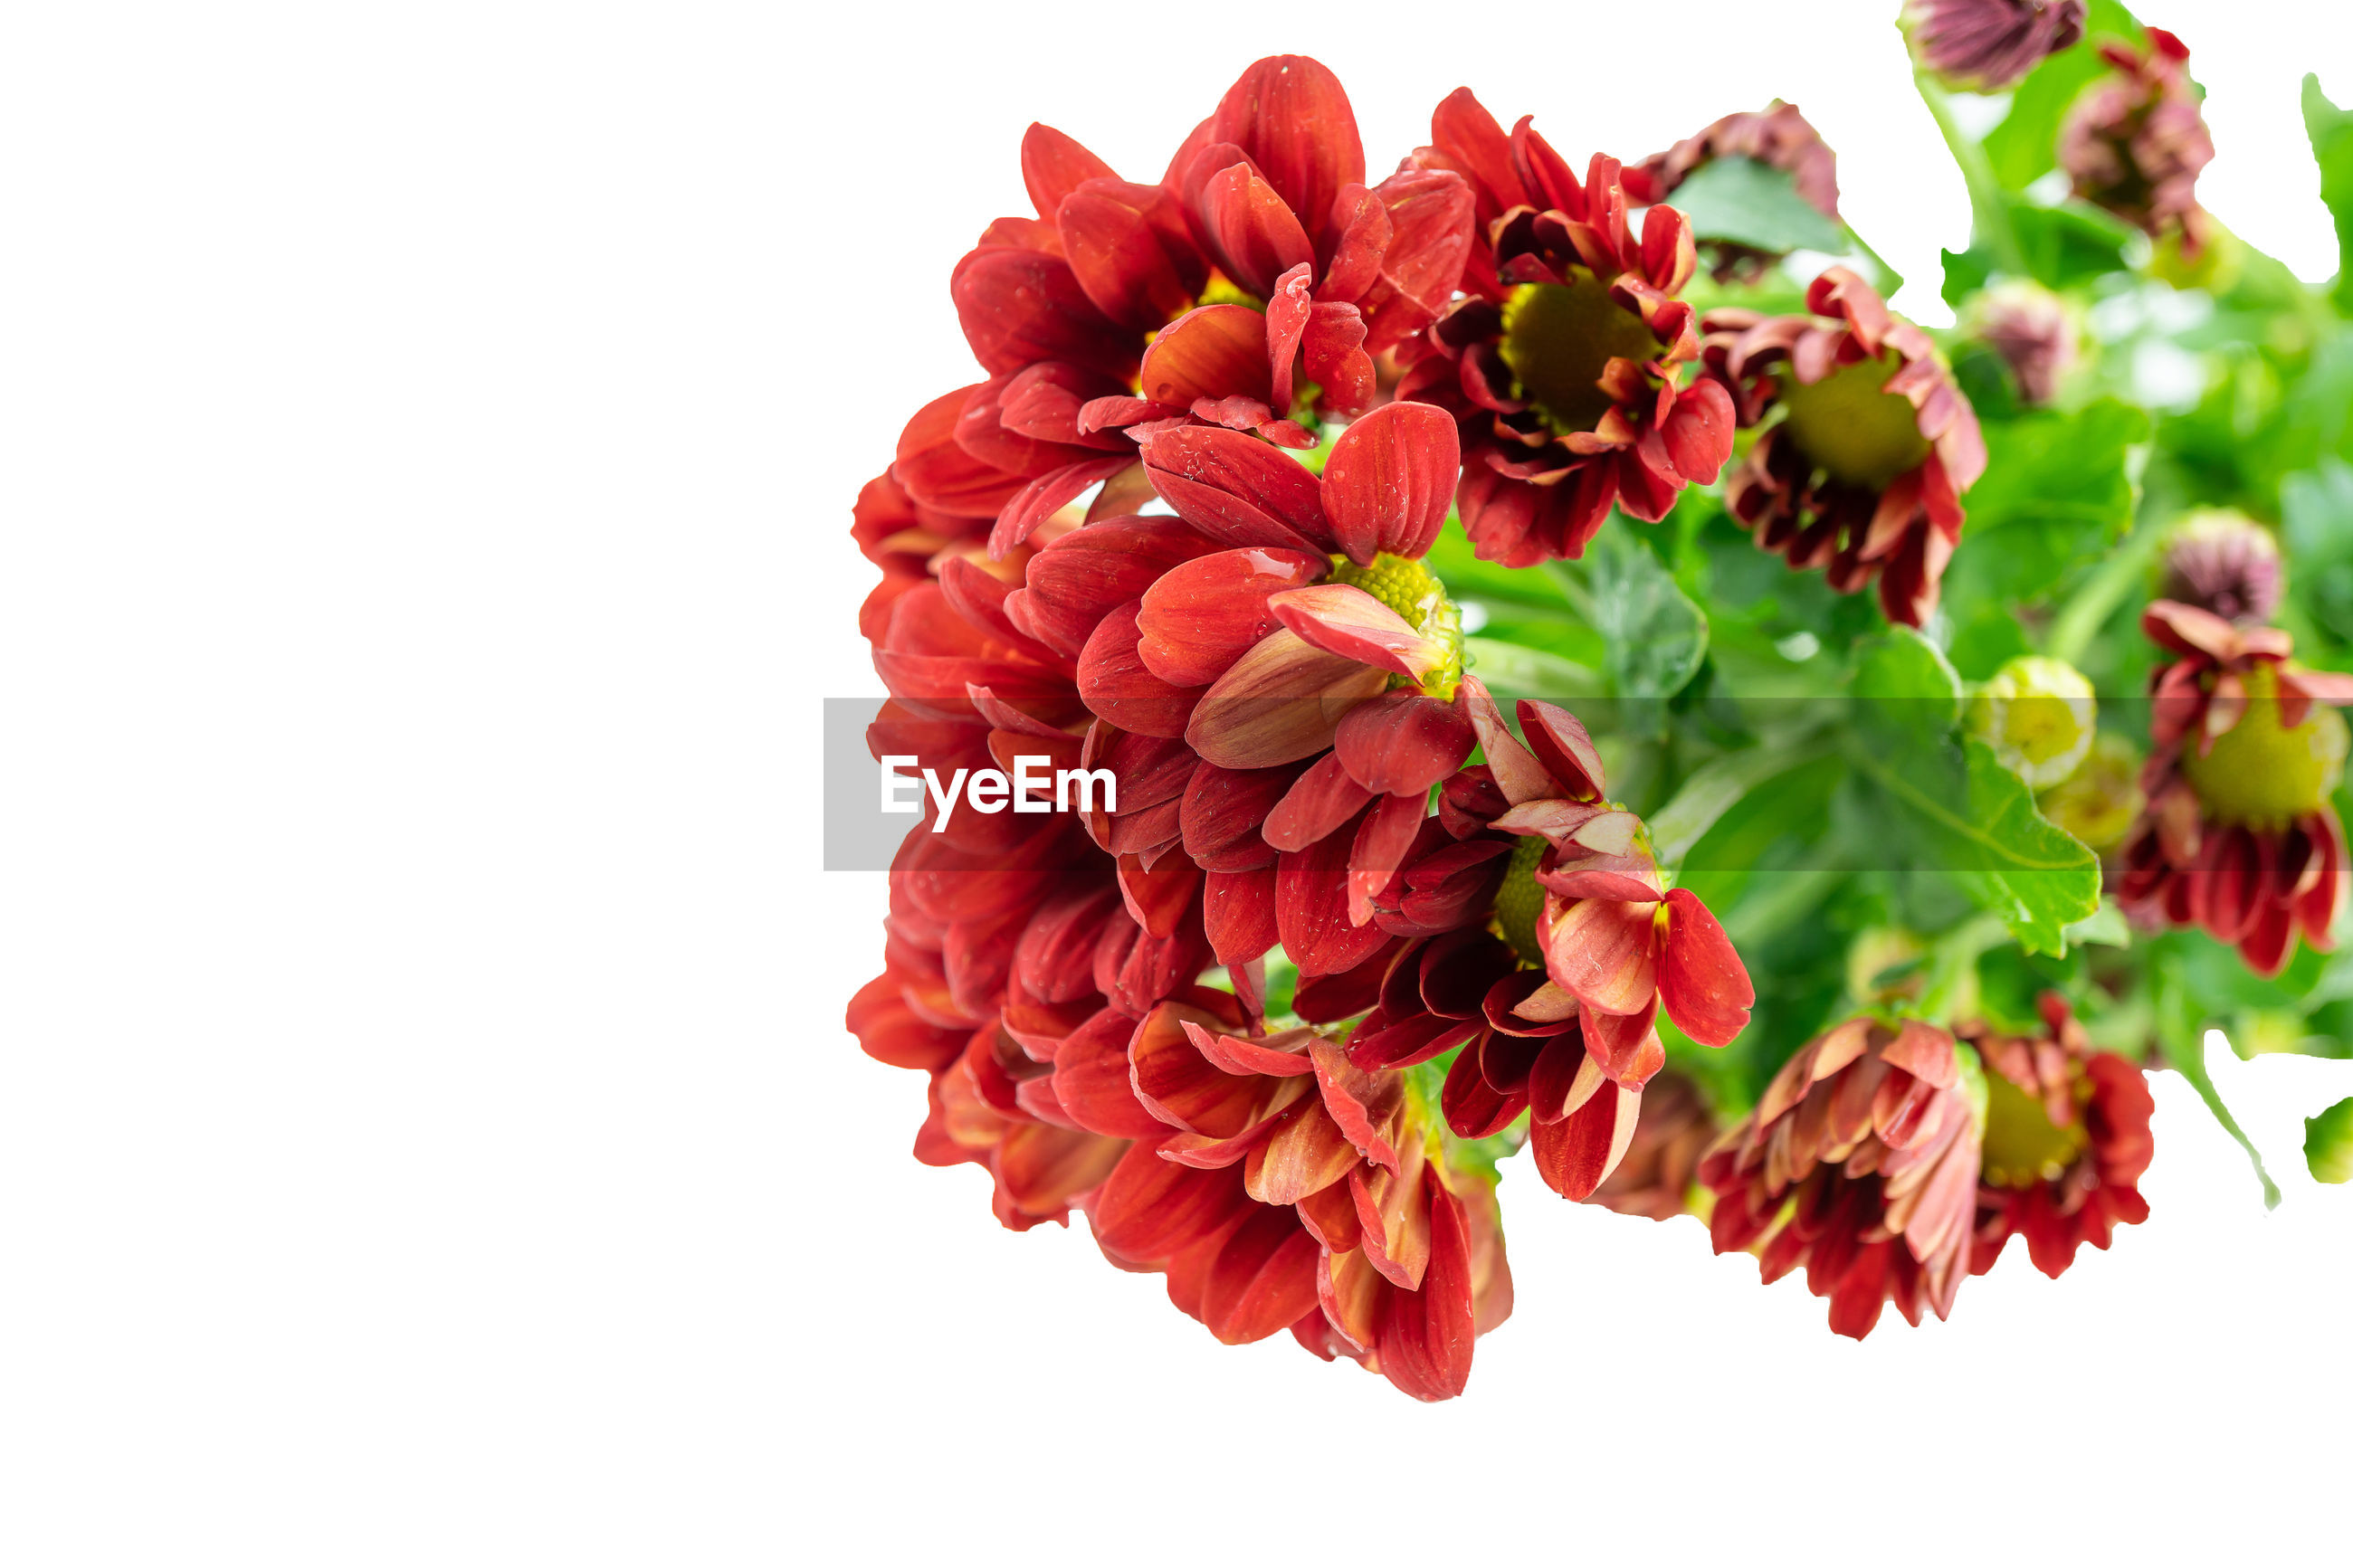 CLOSE-UP OF RED FLOWERING PLANT OVER WHITE BACKGROUND